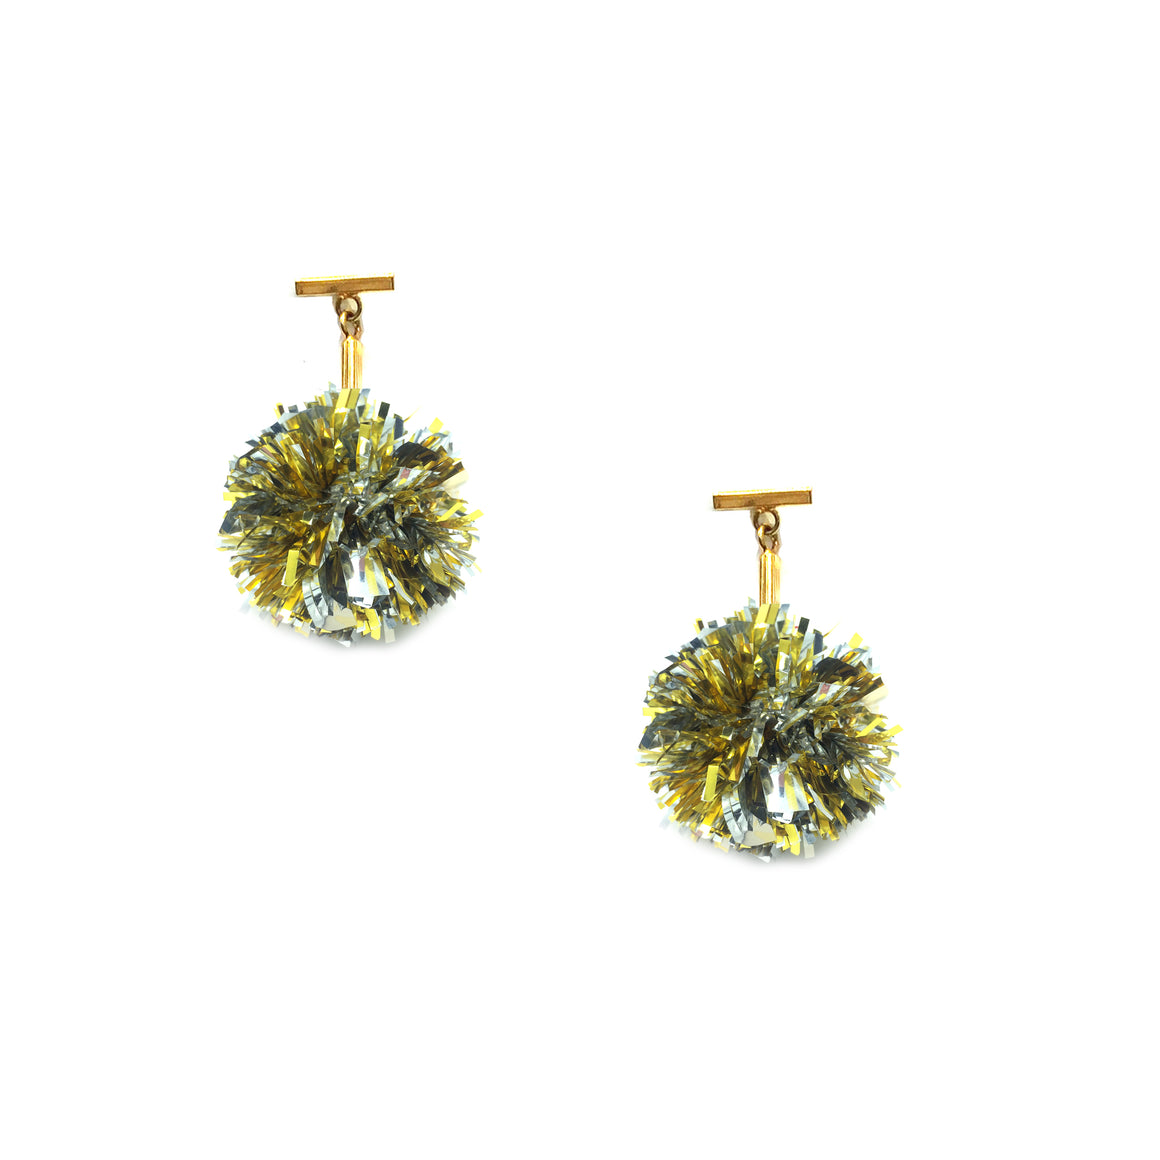 "1"" Gold and Silver Lurex Pom Pom T Stud Earrings, Earrings, Tuleste, Tuleste"